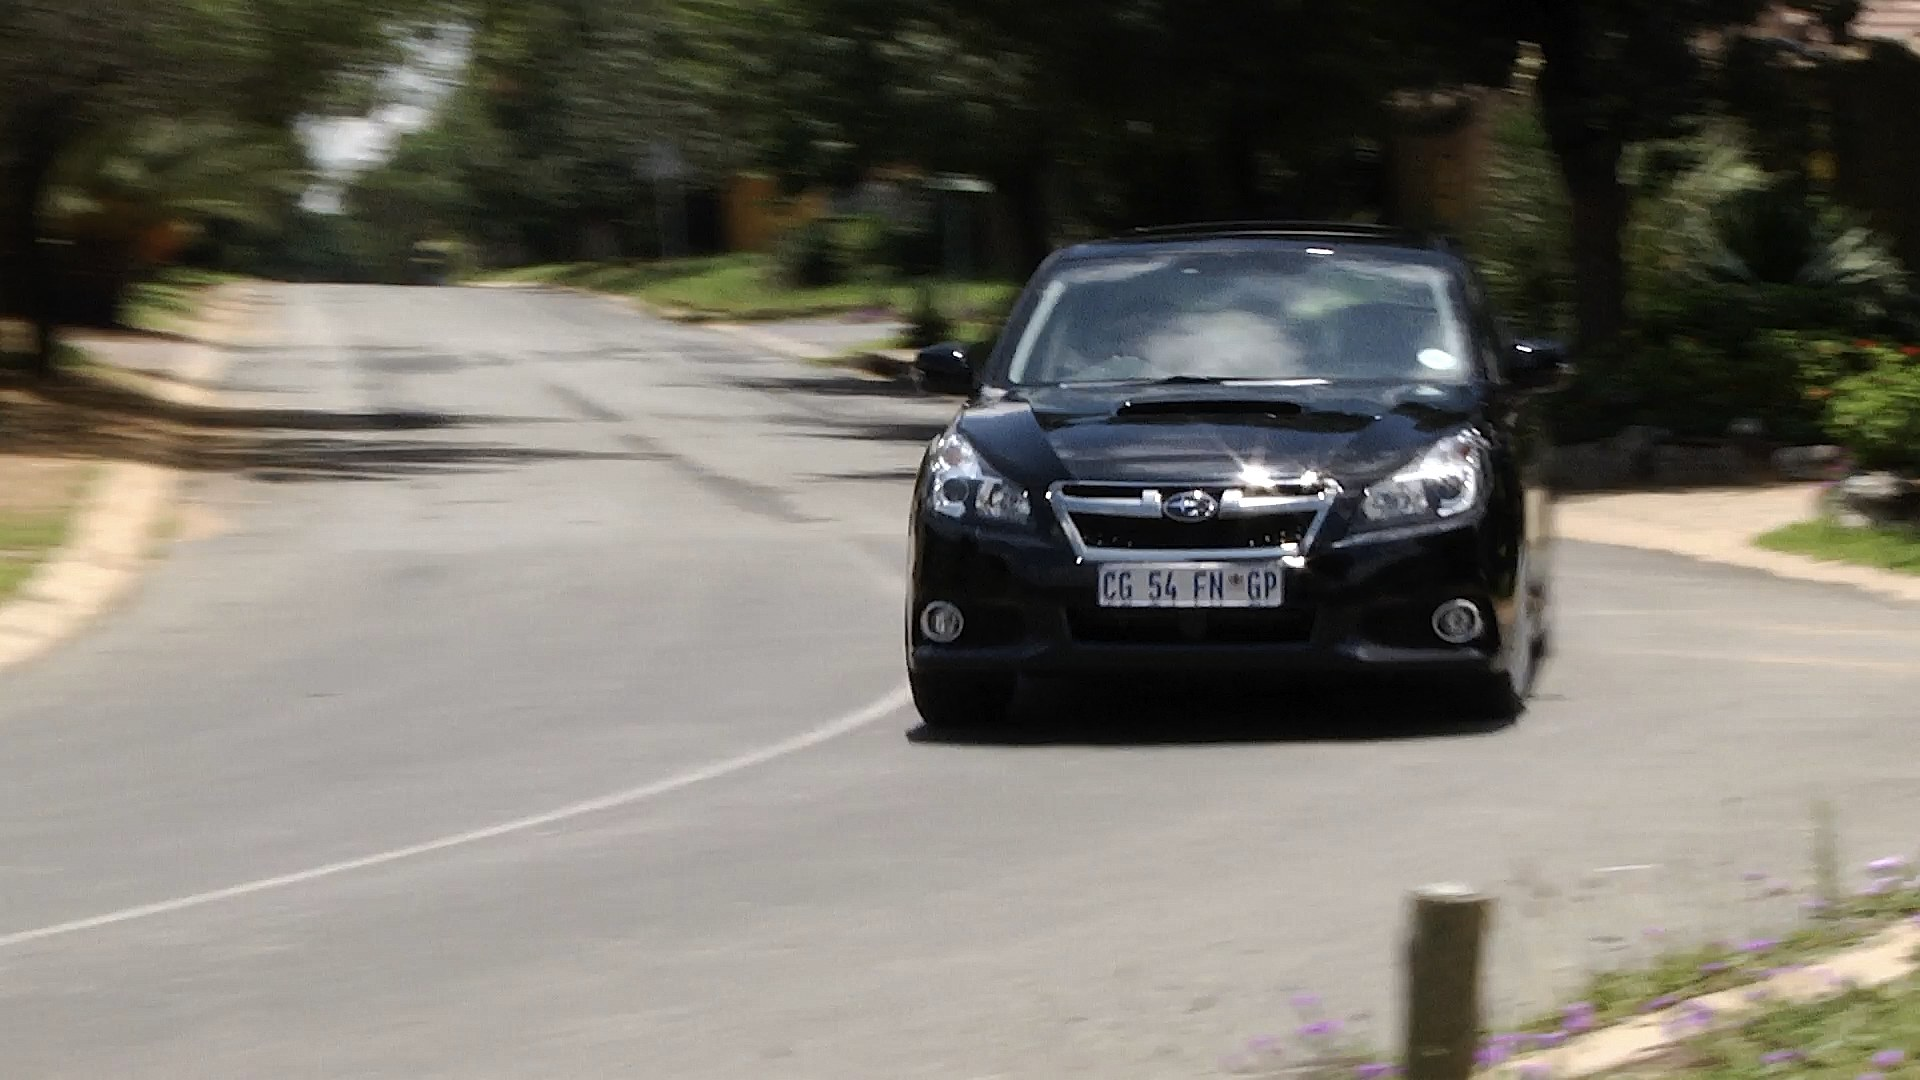 Subaru Legacy 2.5 GT (2013): New Car Review – Surf4cars